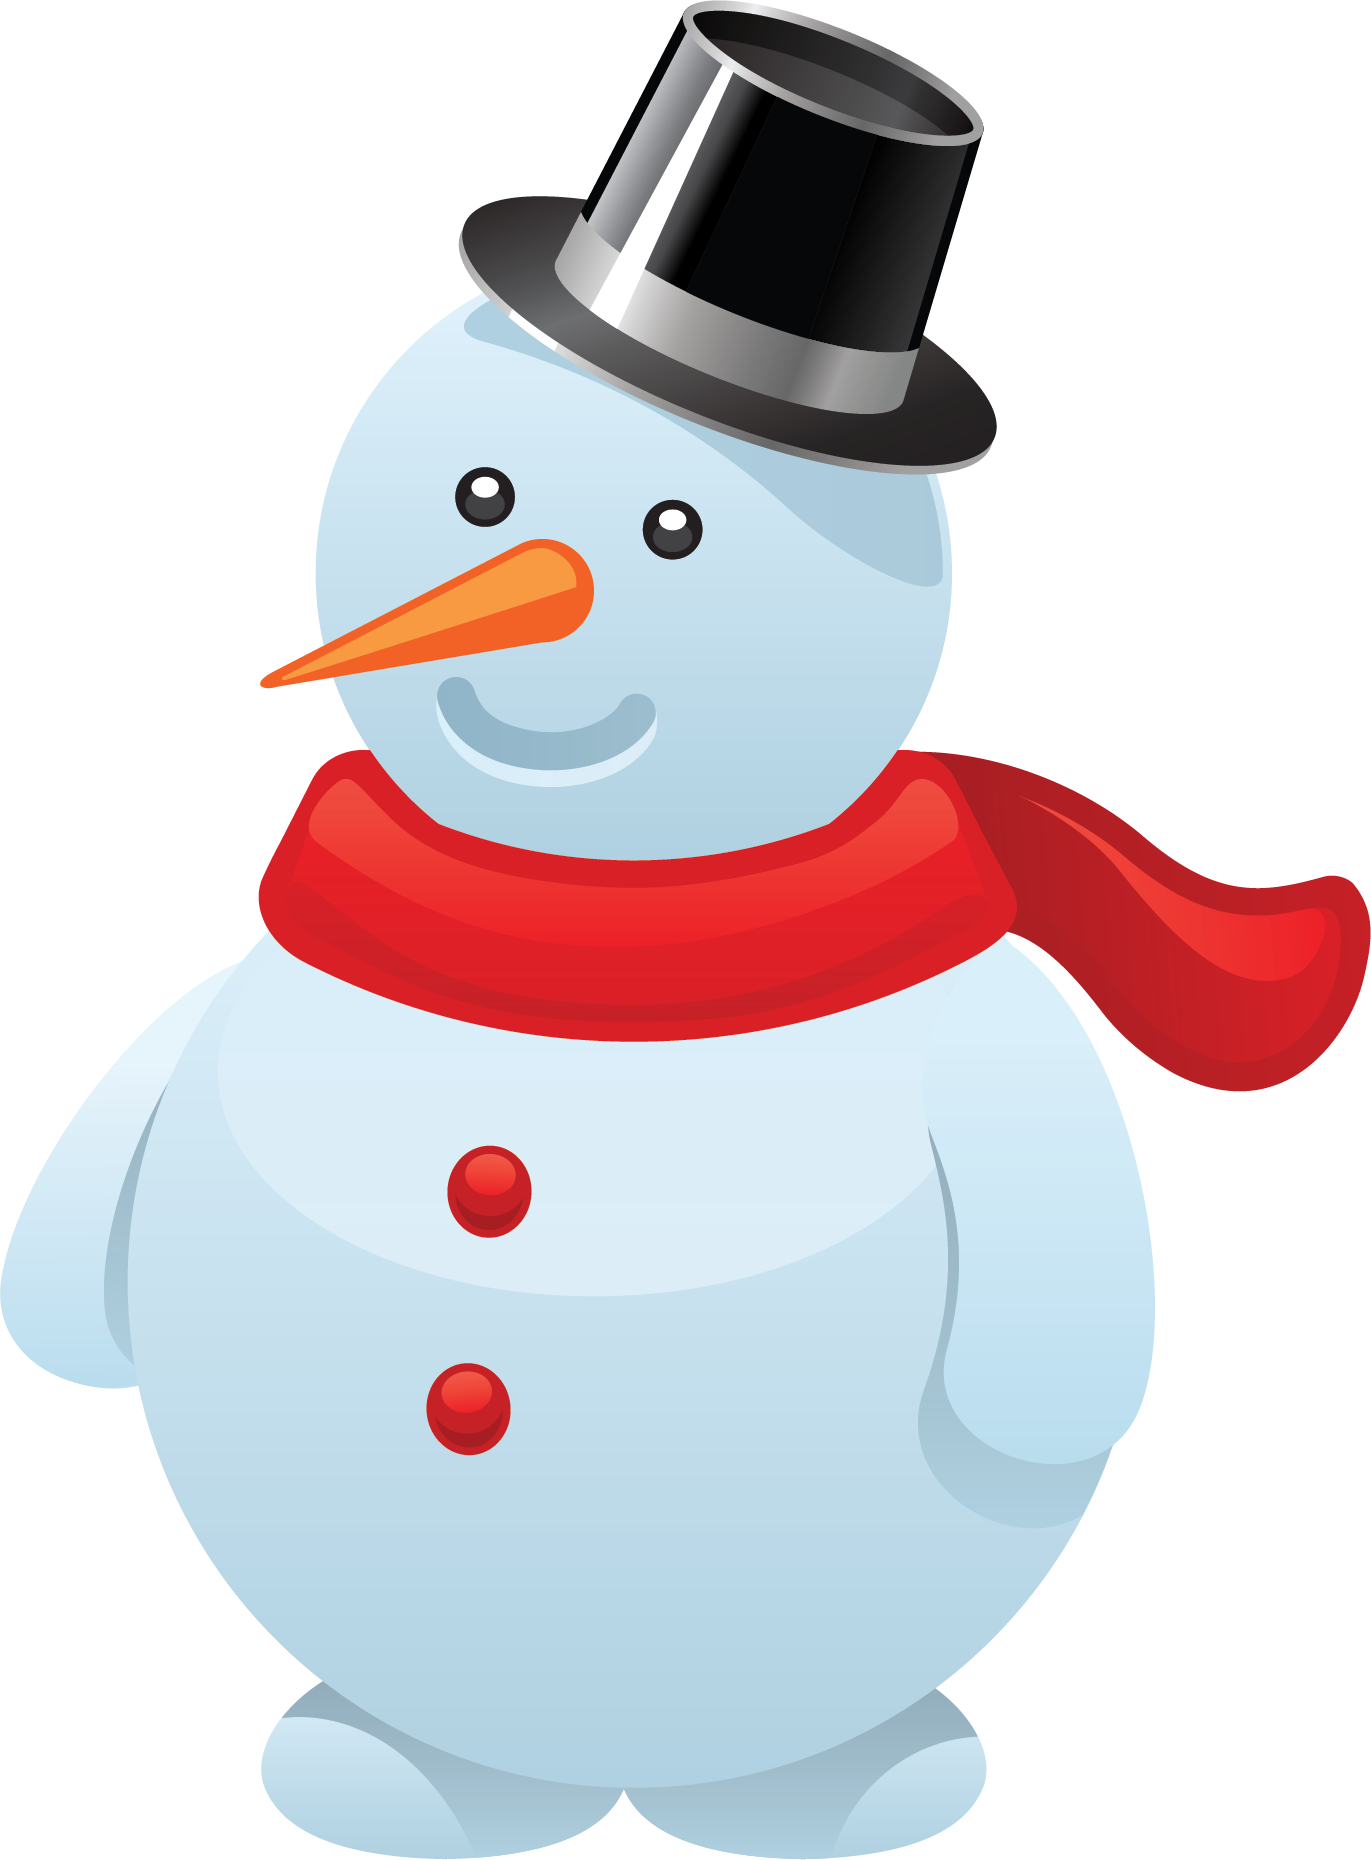 Snowman clipart december Free printable images Holiday and